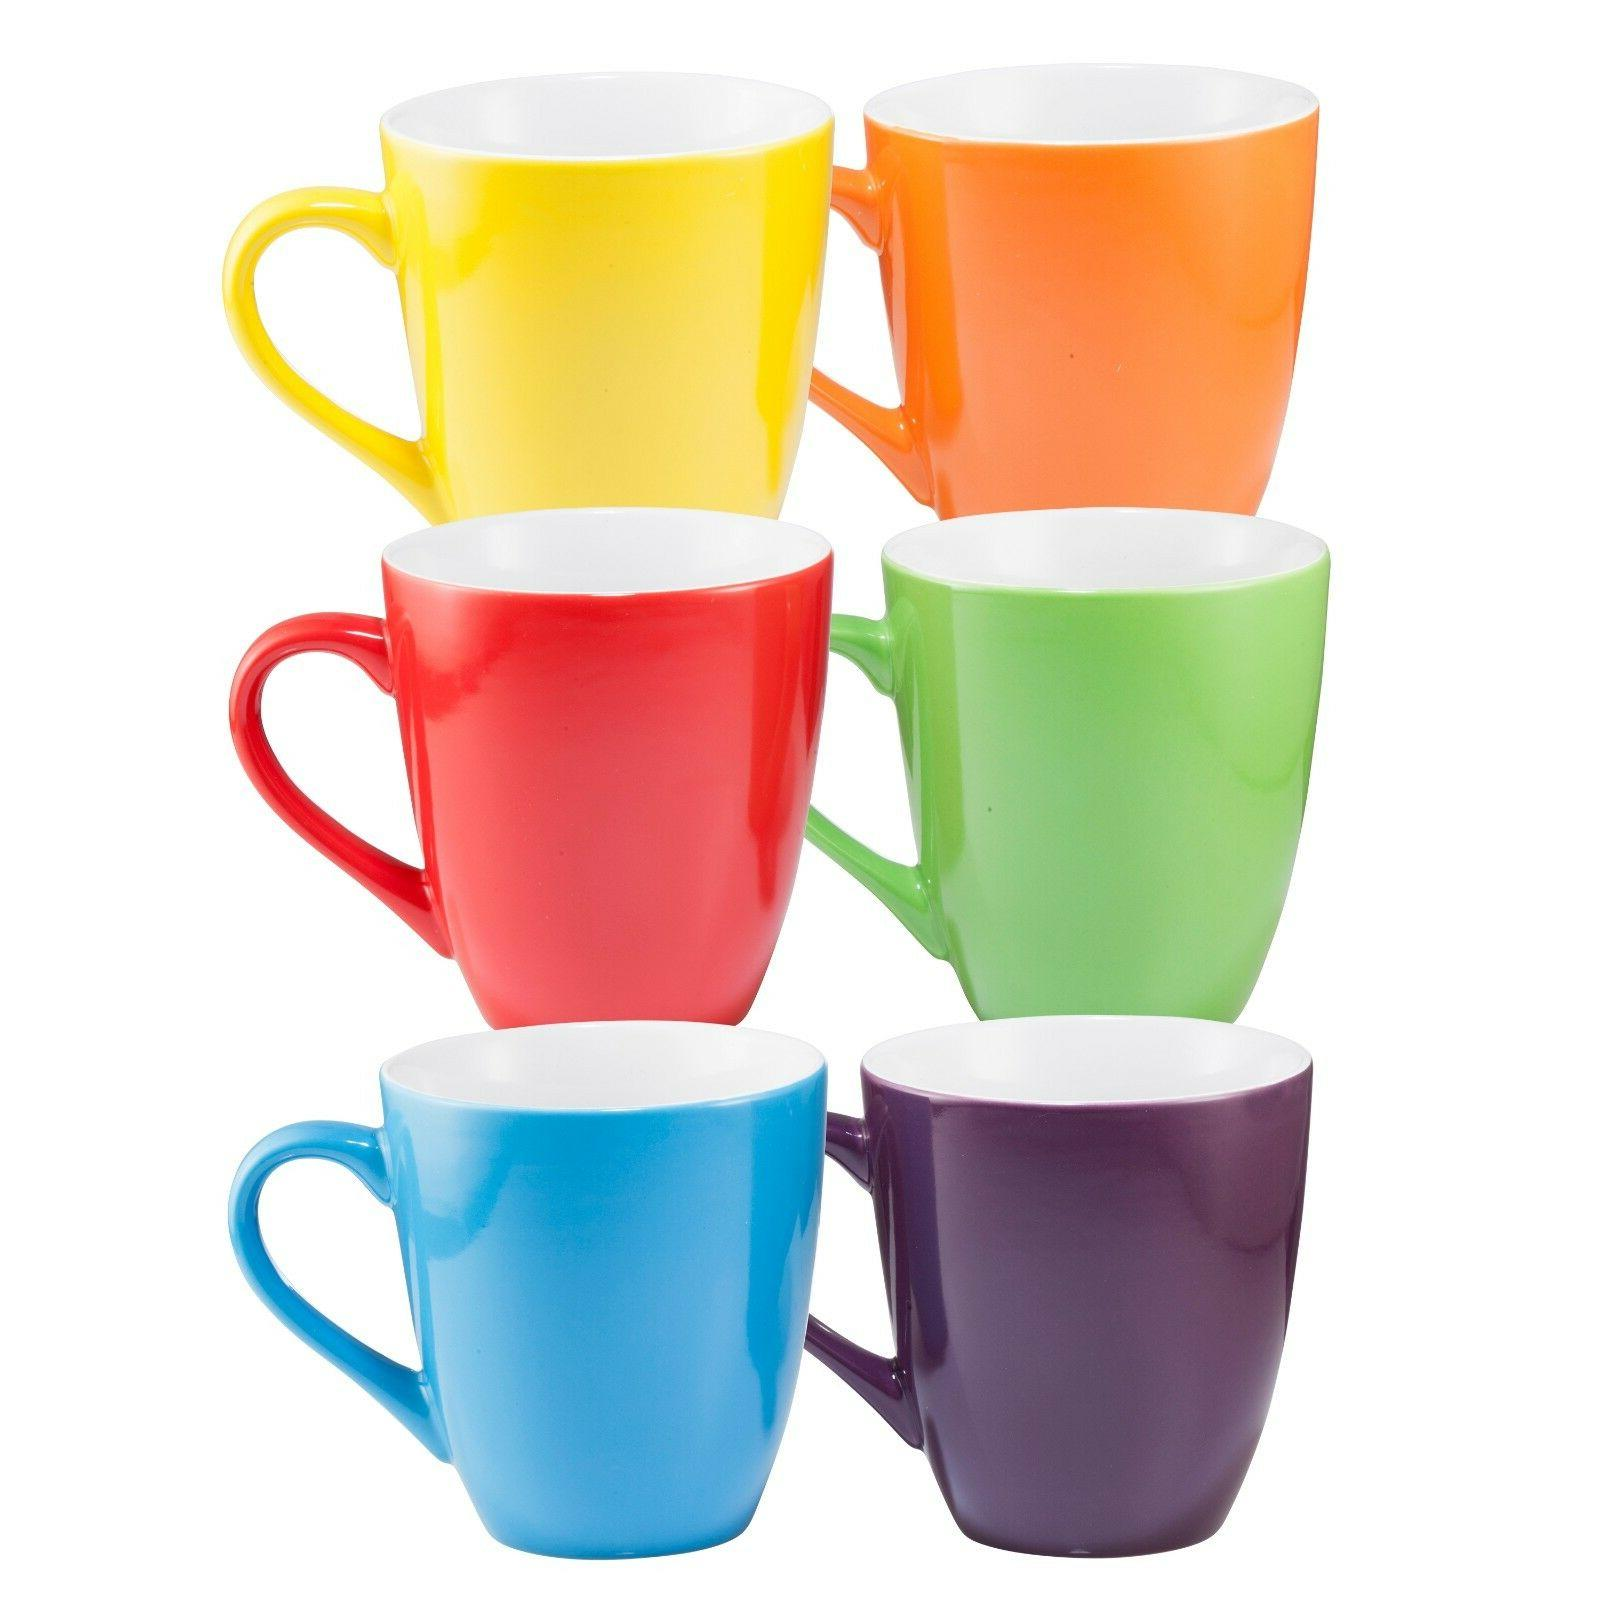 Coffee Cups of Large-sized Ounce